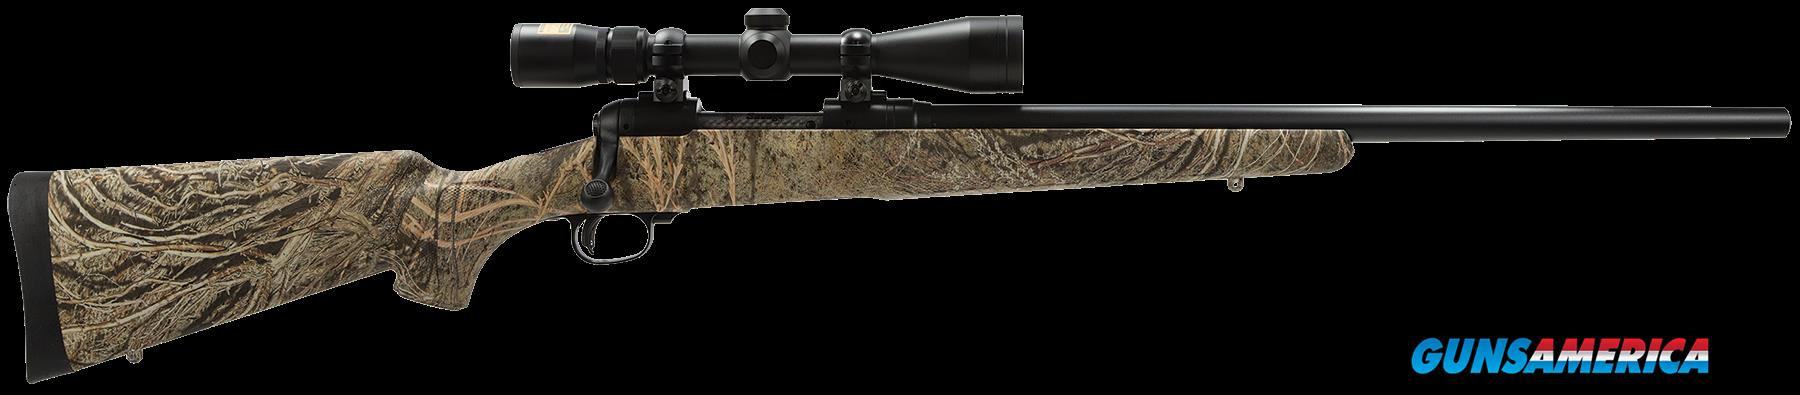 "Savage 22214 11 Trophy Predator Hunter with Scope Bolt 22-250 Rem 22"" 4+1 Synthetic Mossy Oak Brush  Guns > Rifles > S Misc Rifles"